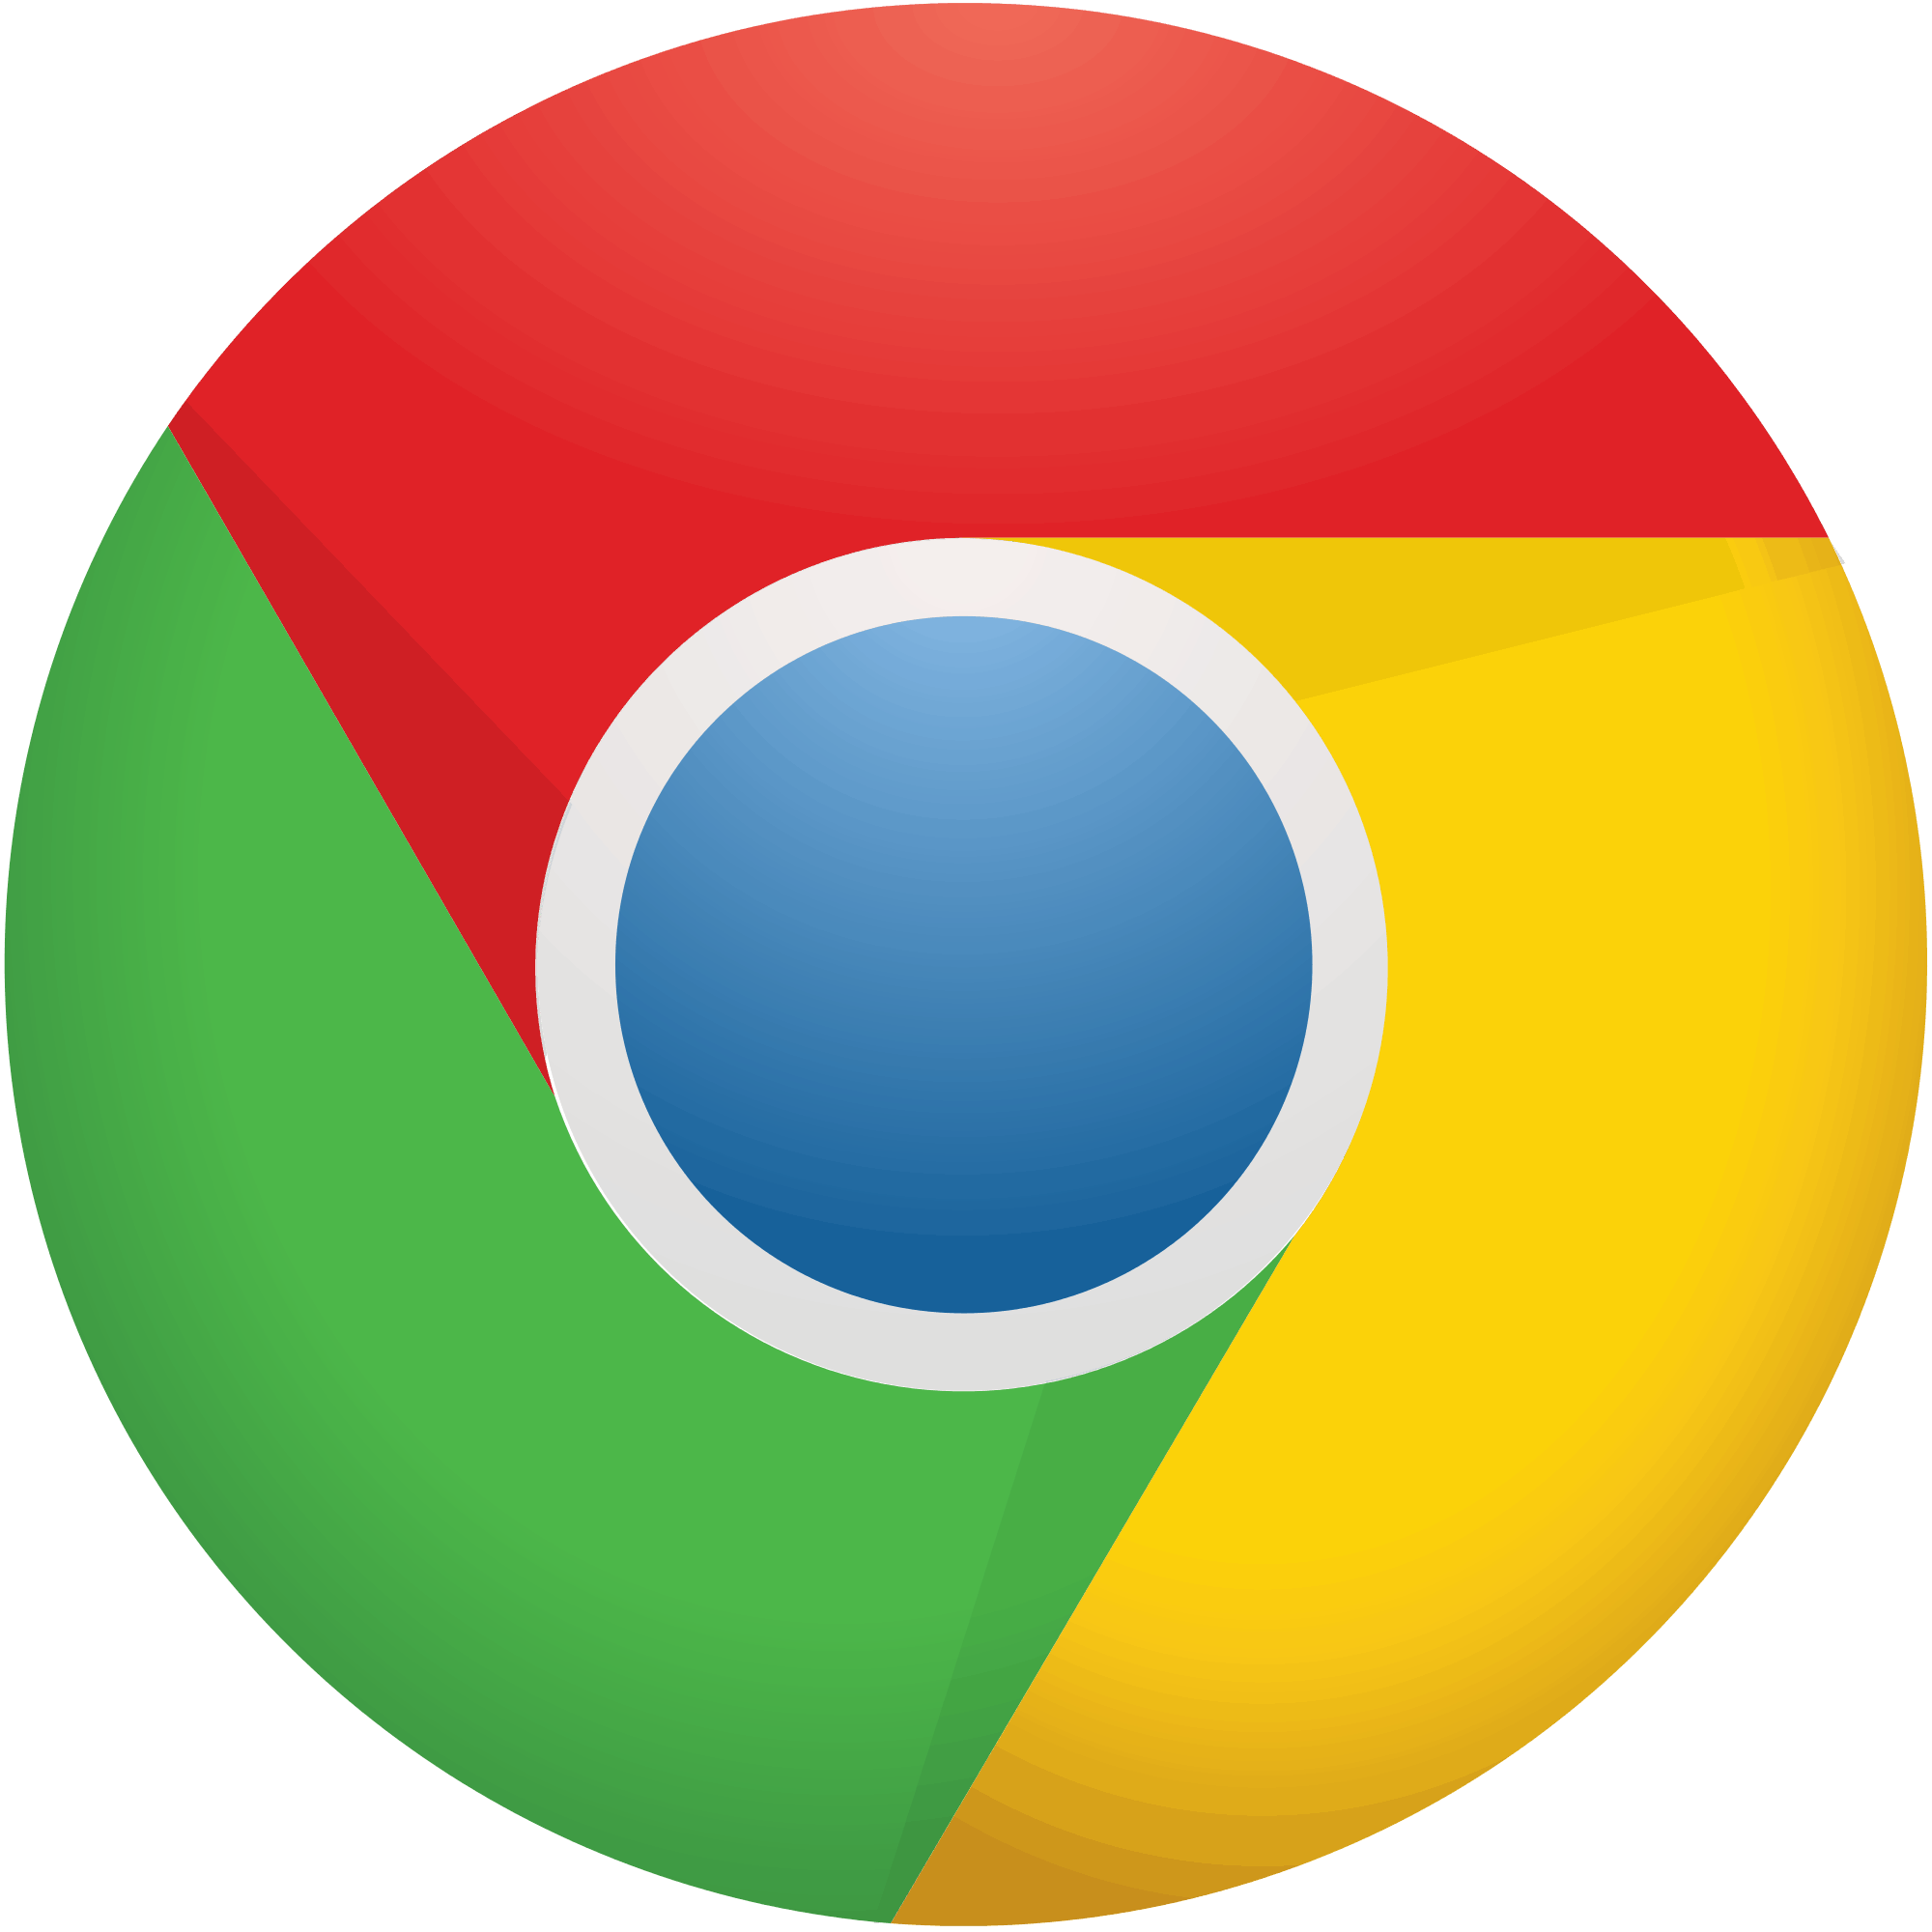 Shake Up Learning's Favorite Google Chrome Extensions